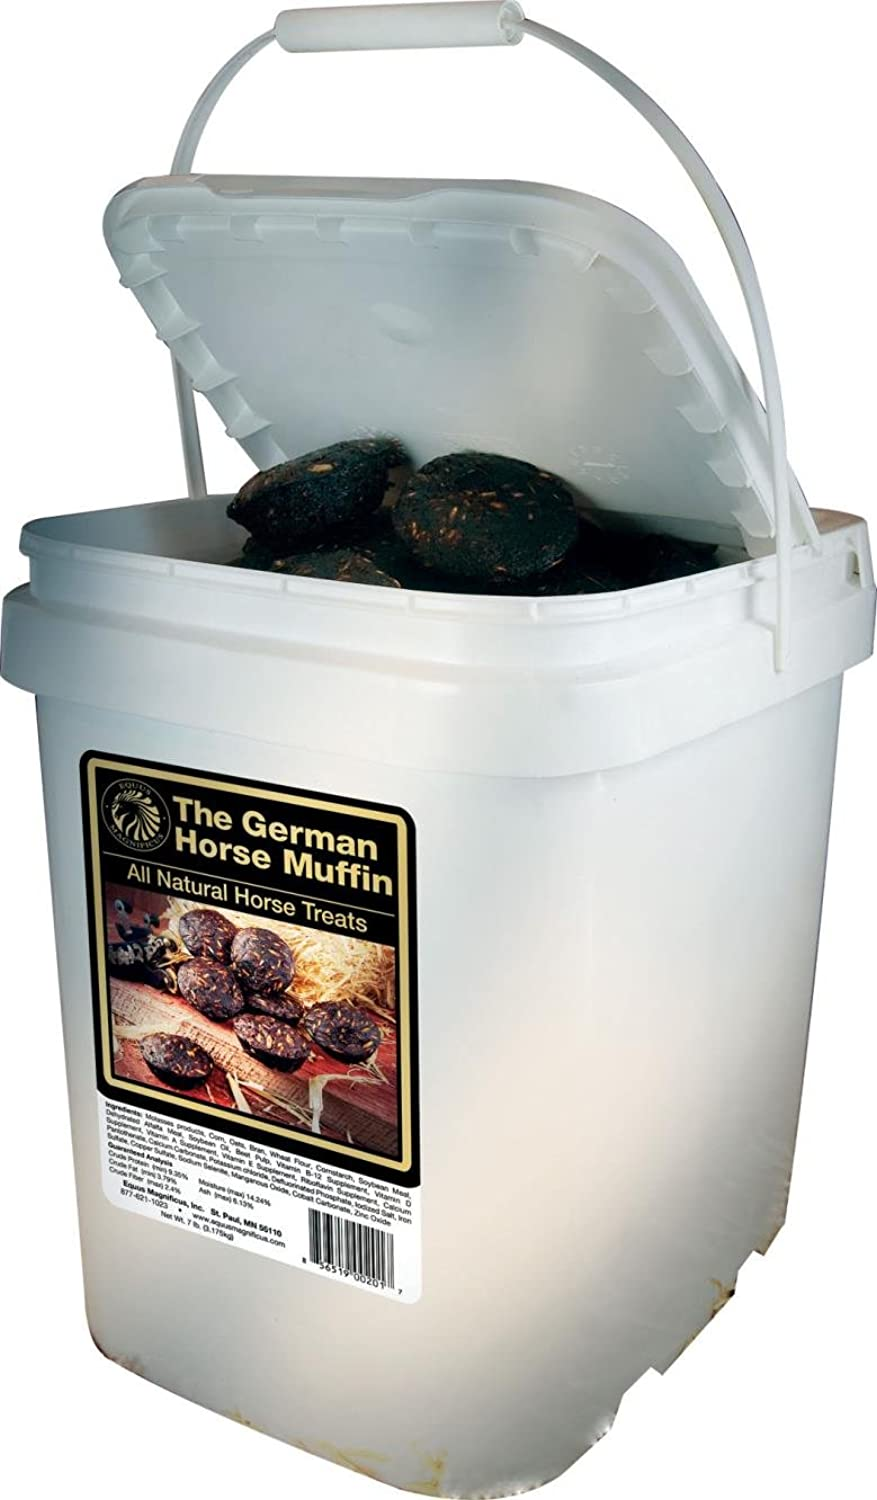 DPD The German Horse Muffin All Natural Horse Treats  7 Pound Bucket